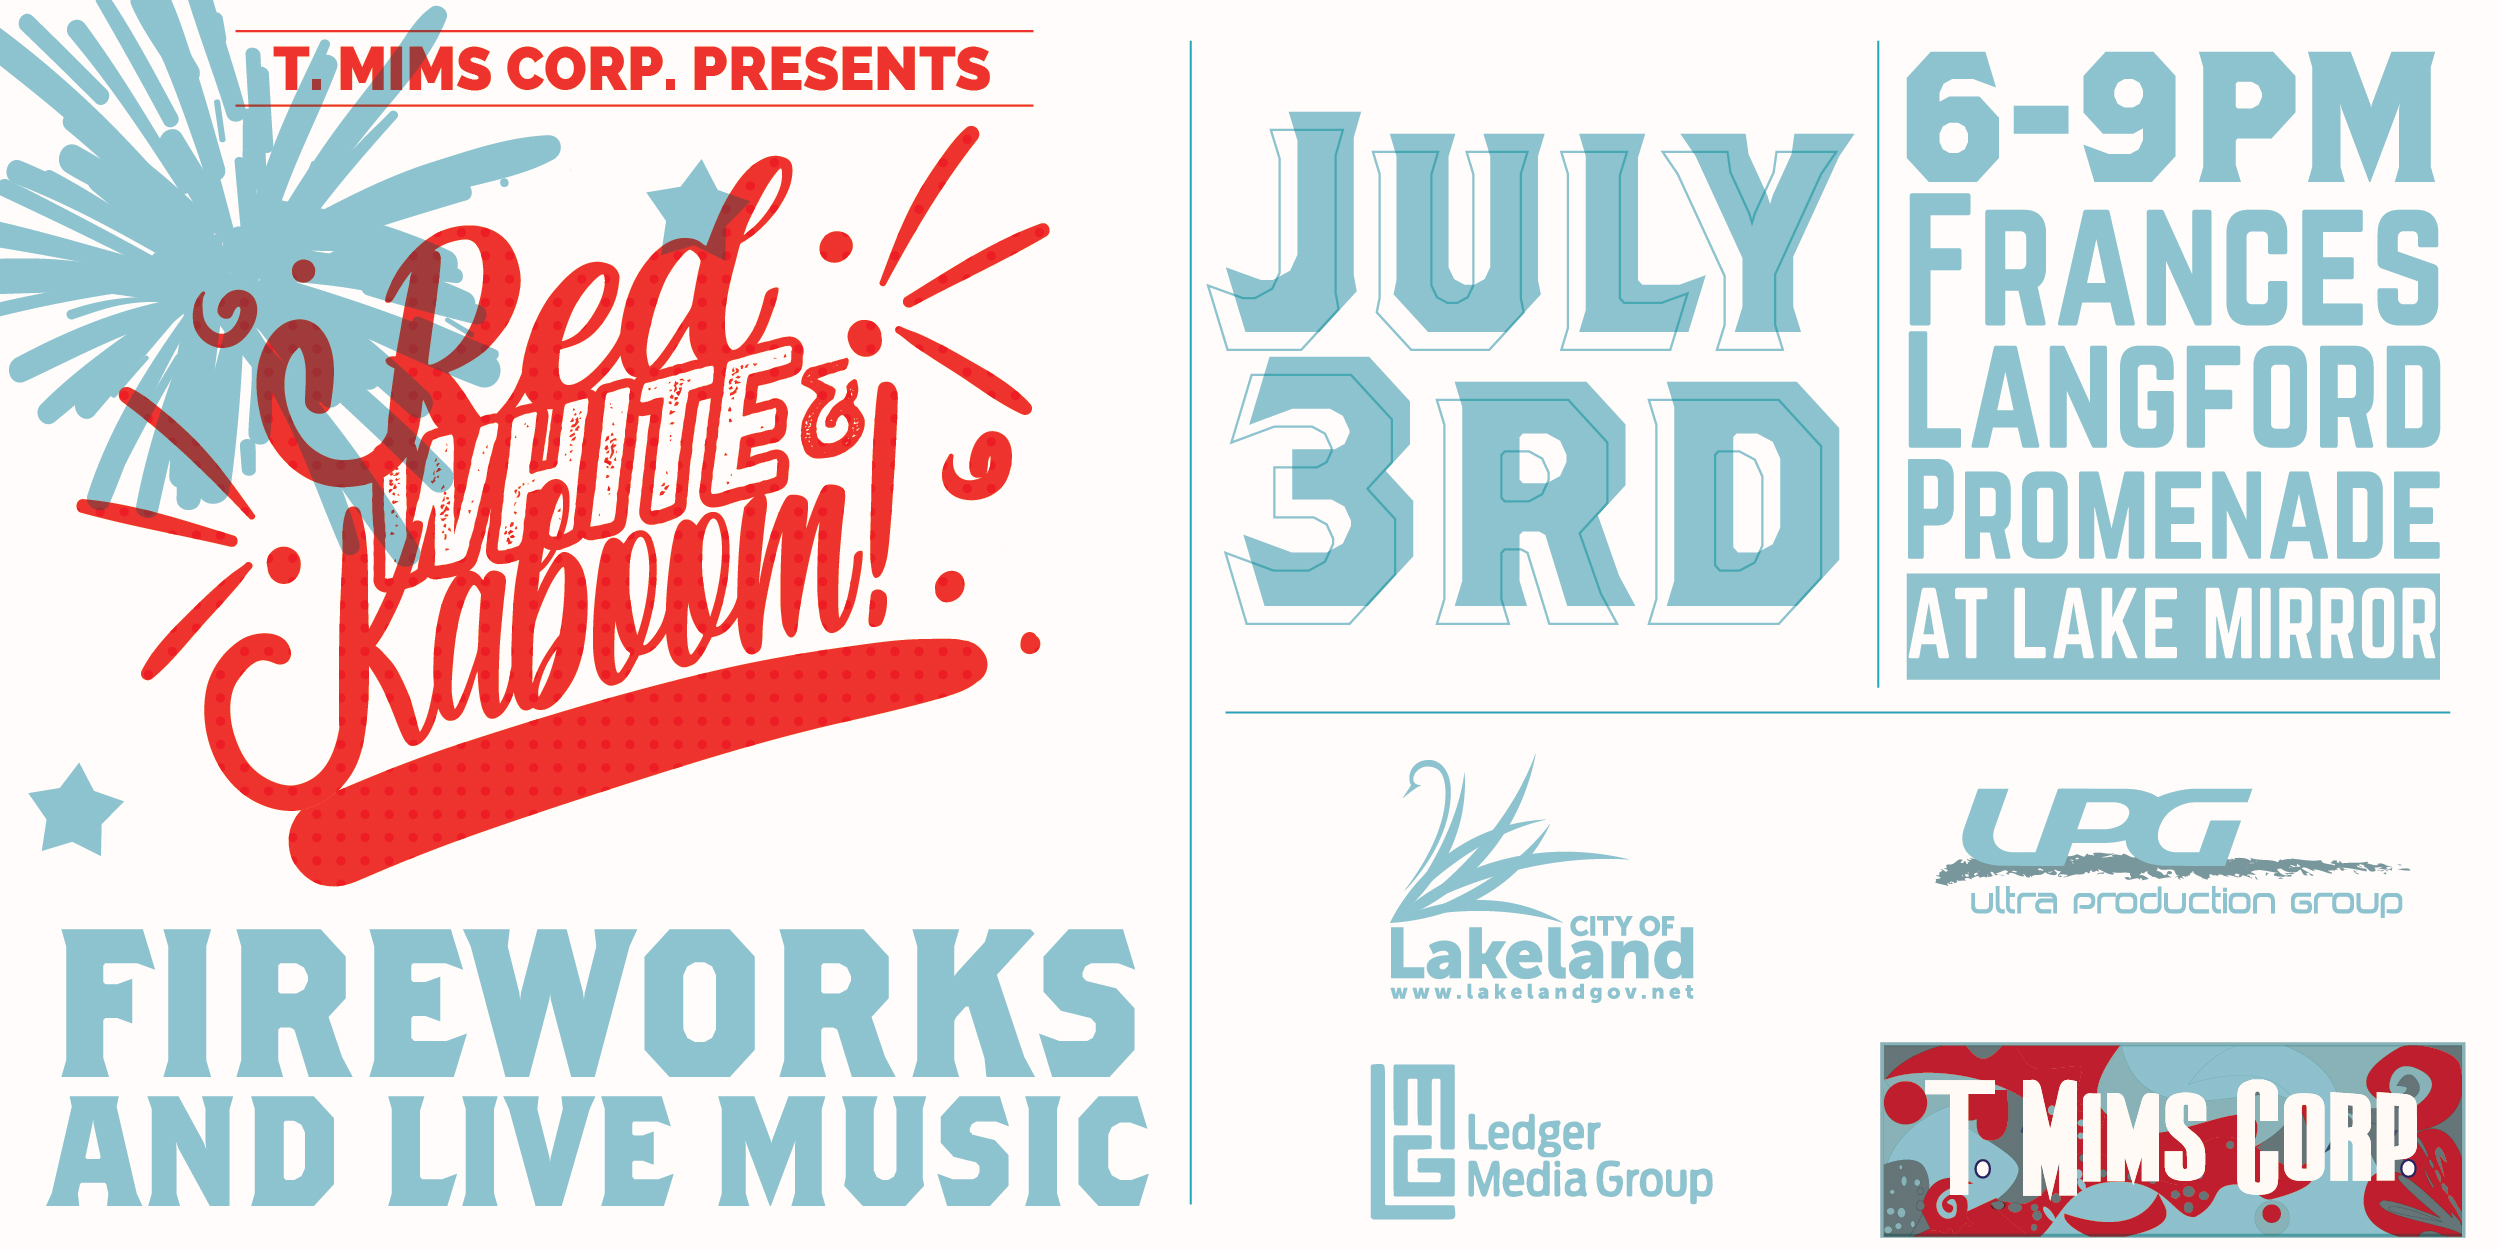 red white and kaboom event poster - july 3rd at the frances langford promenade at lake mirror - with illustrated fireworks in blue in the background and sponsor logos